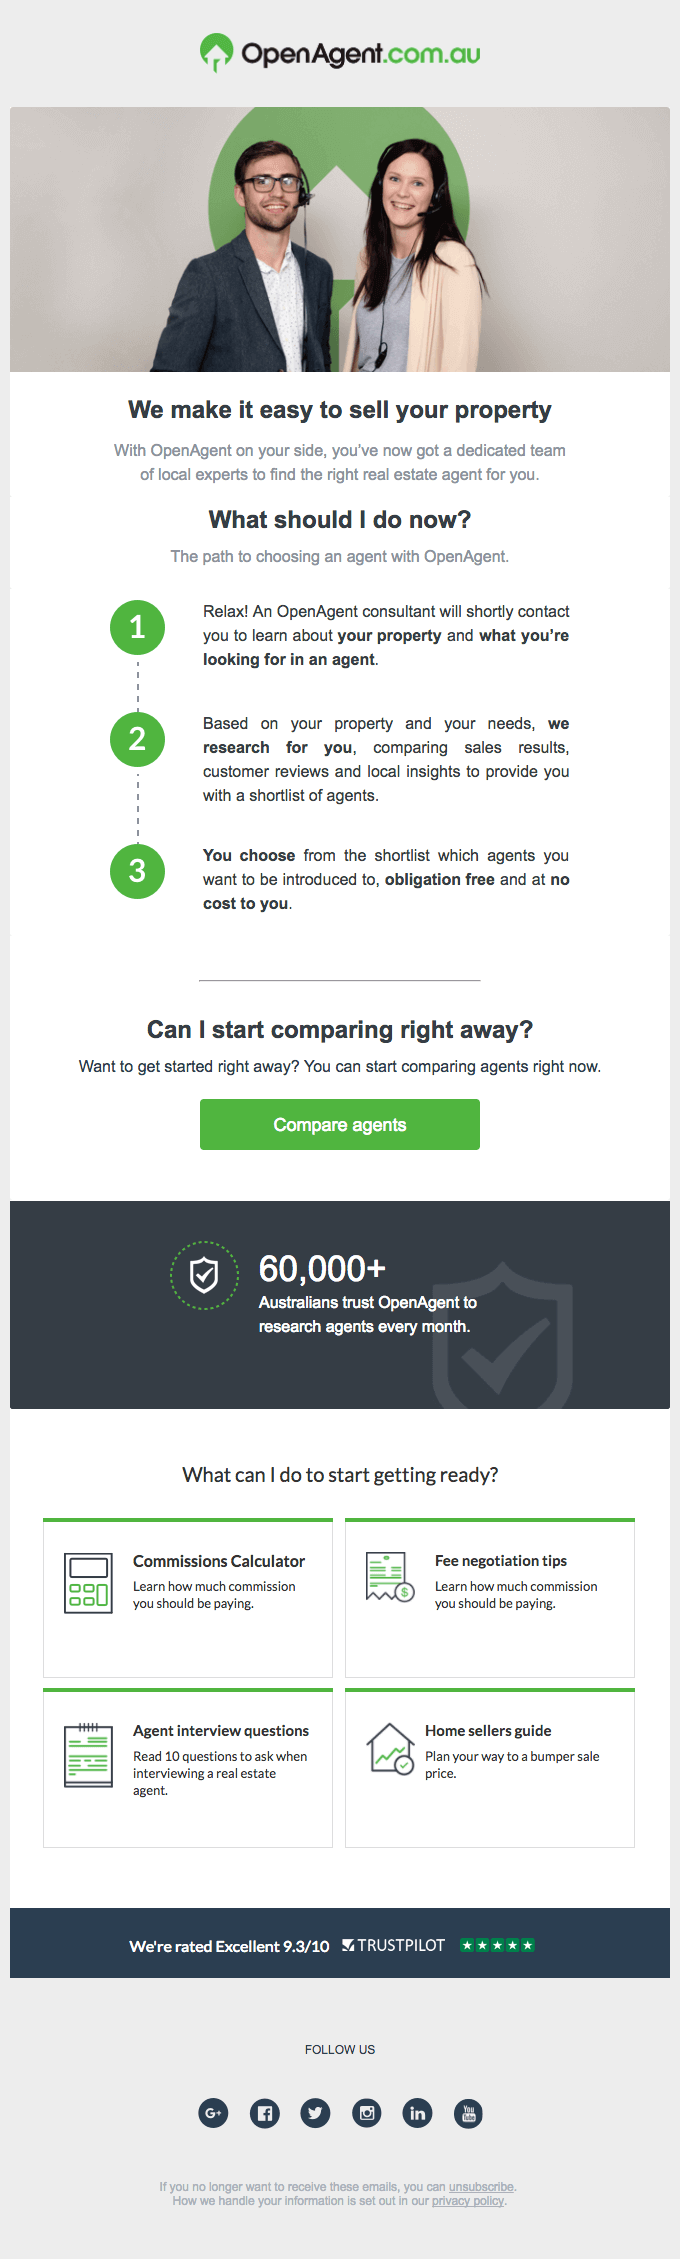 openagent-cta email